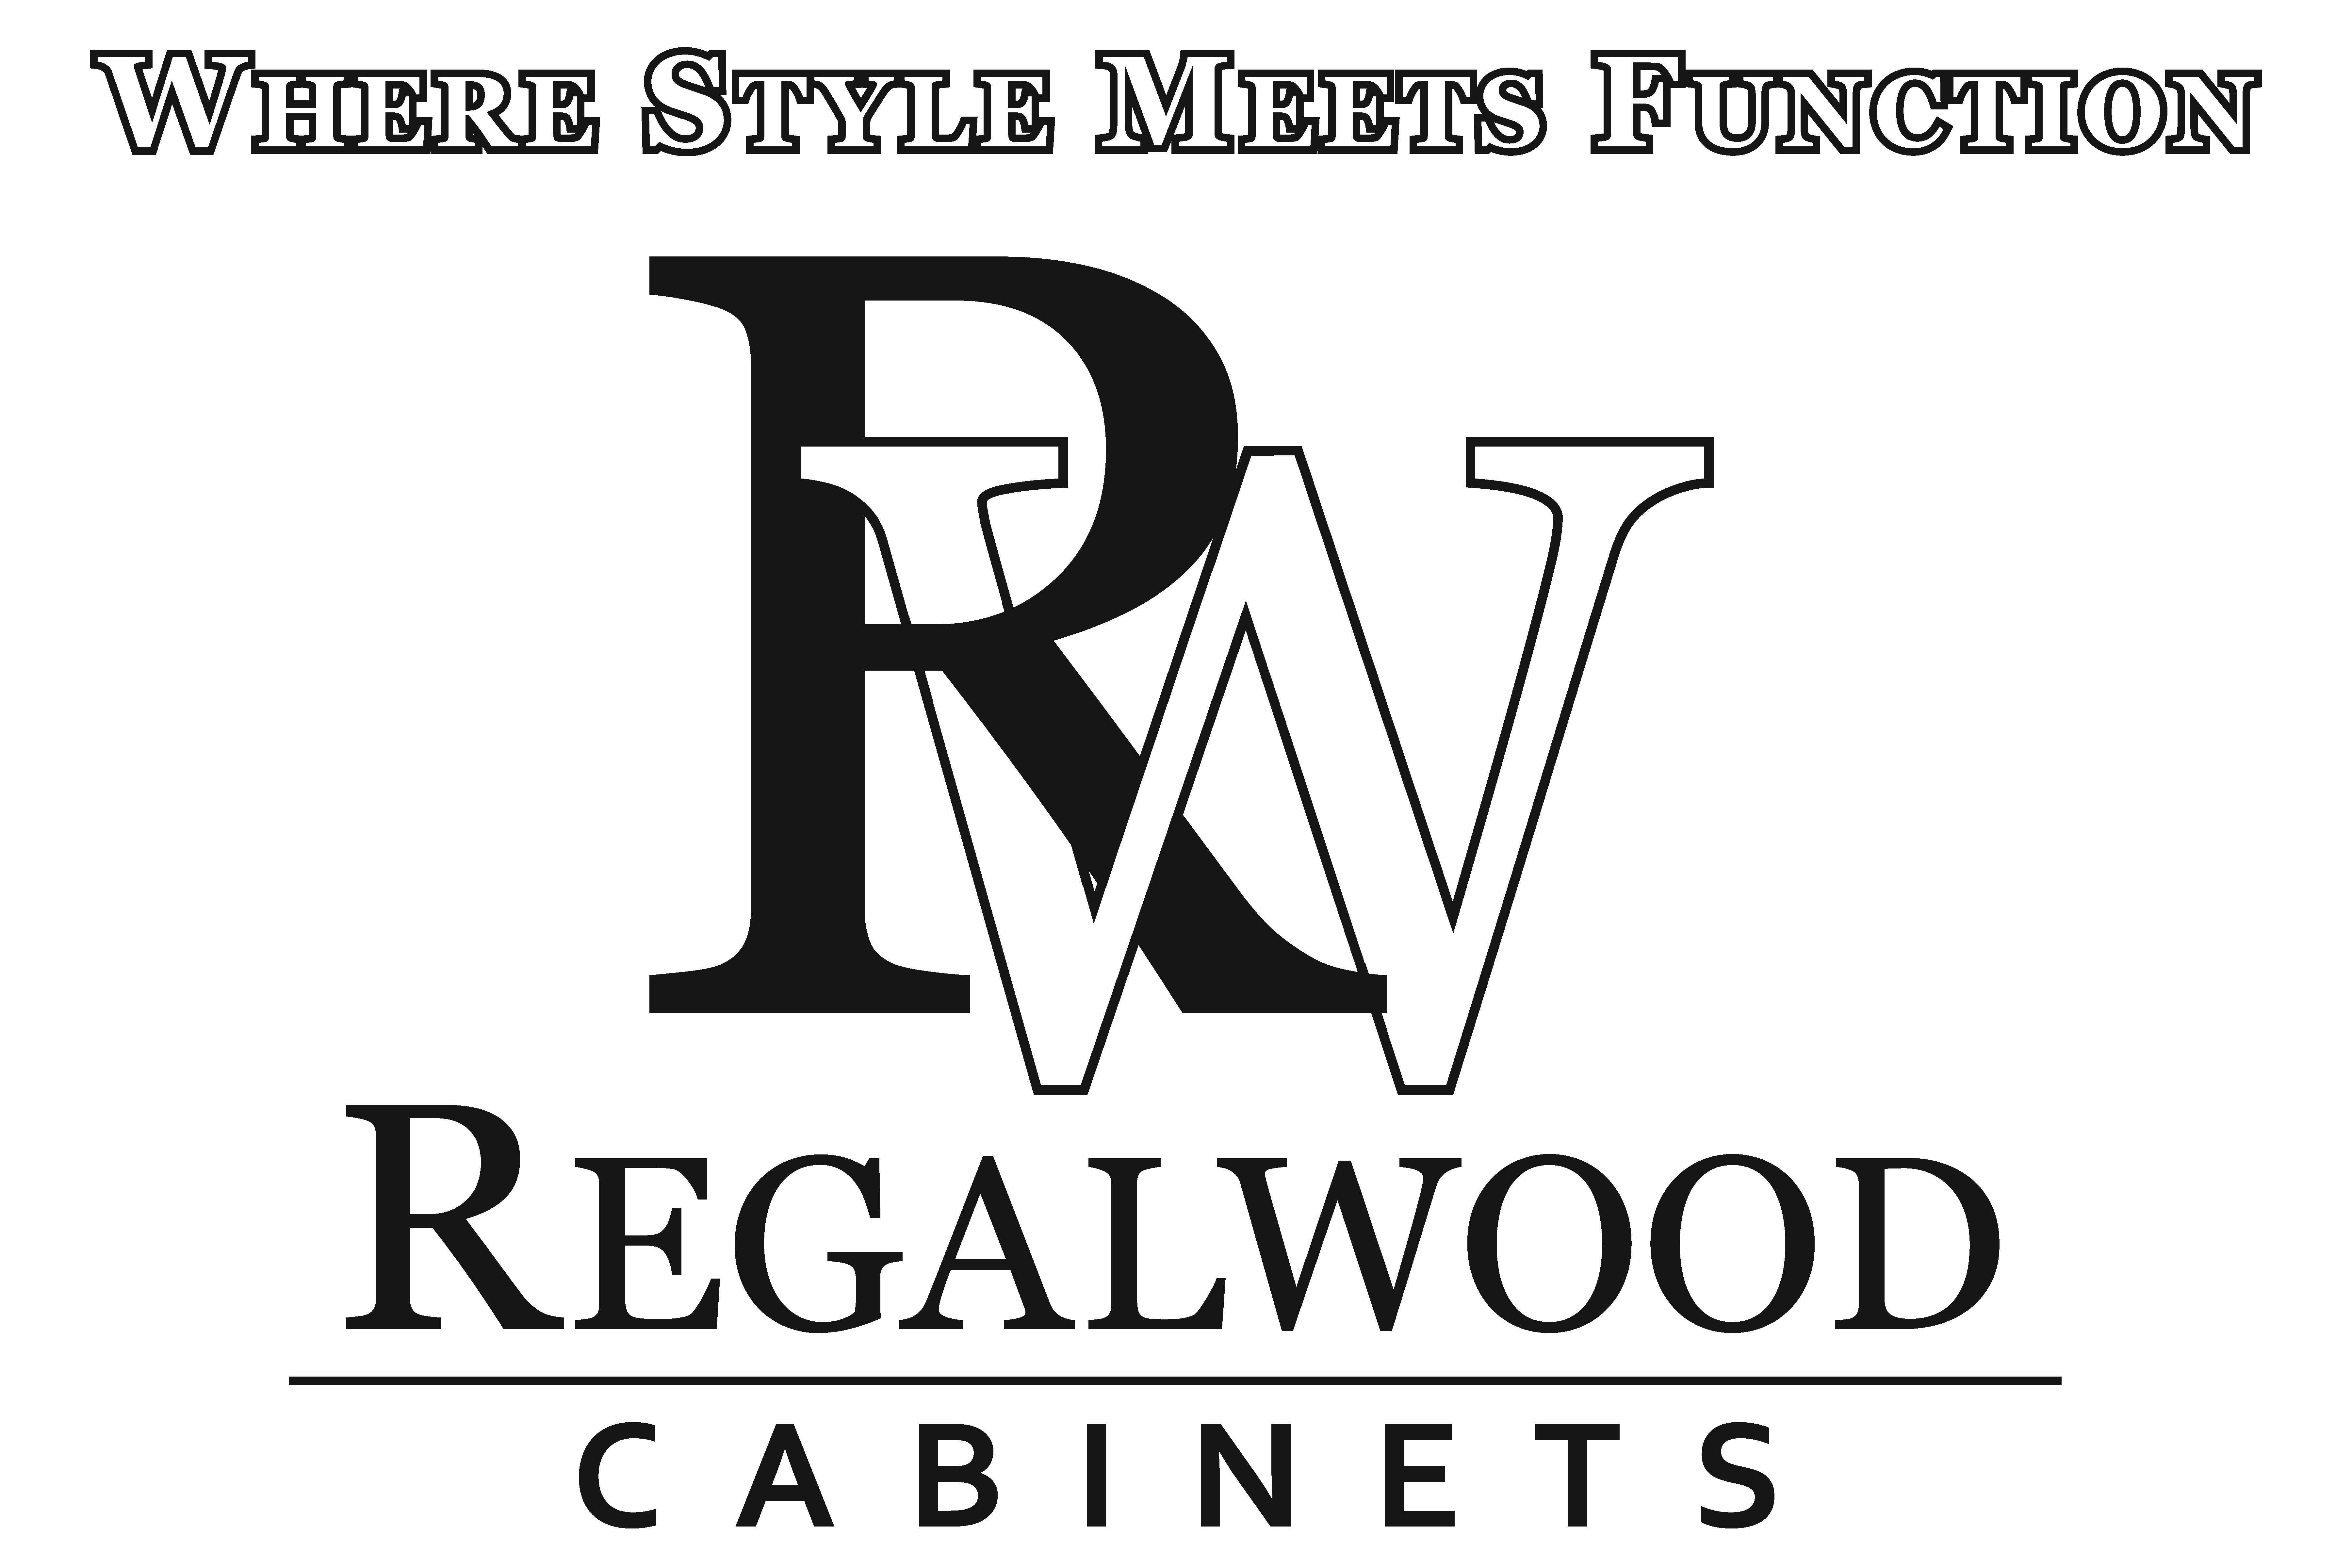 Regalwood Cabinets